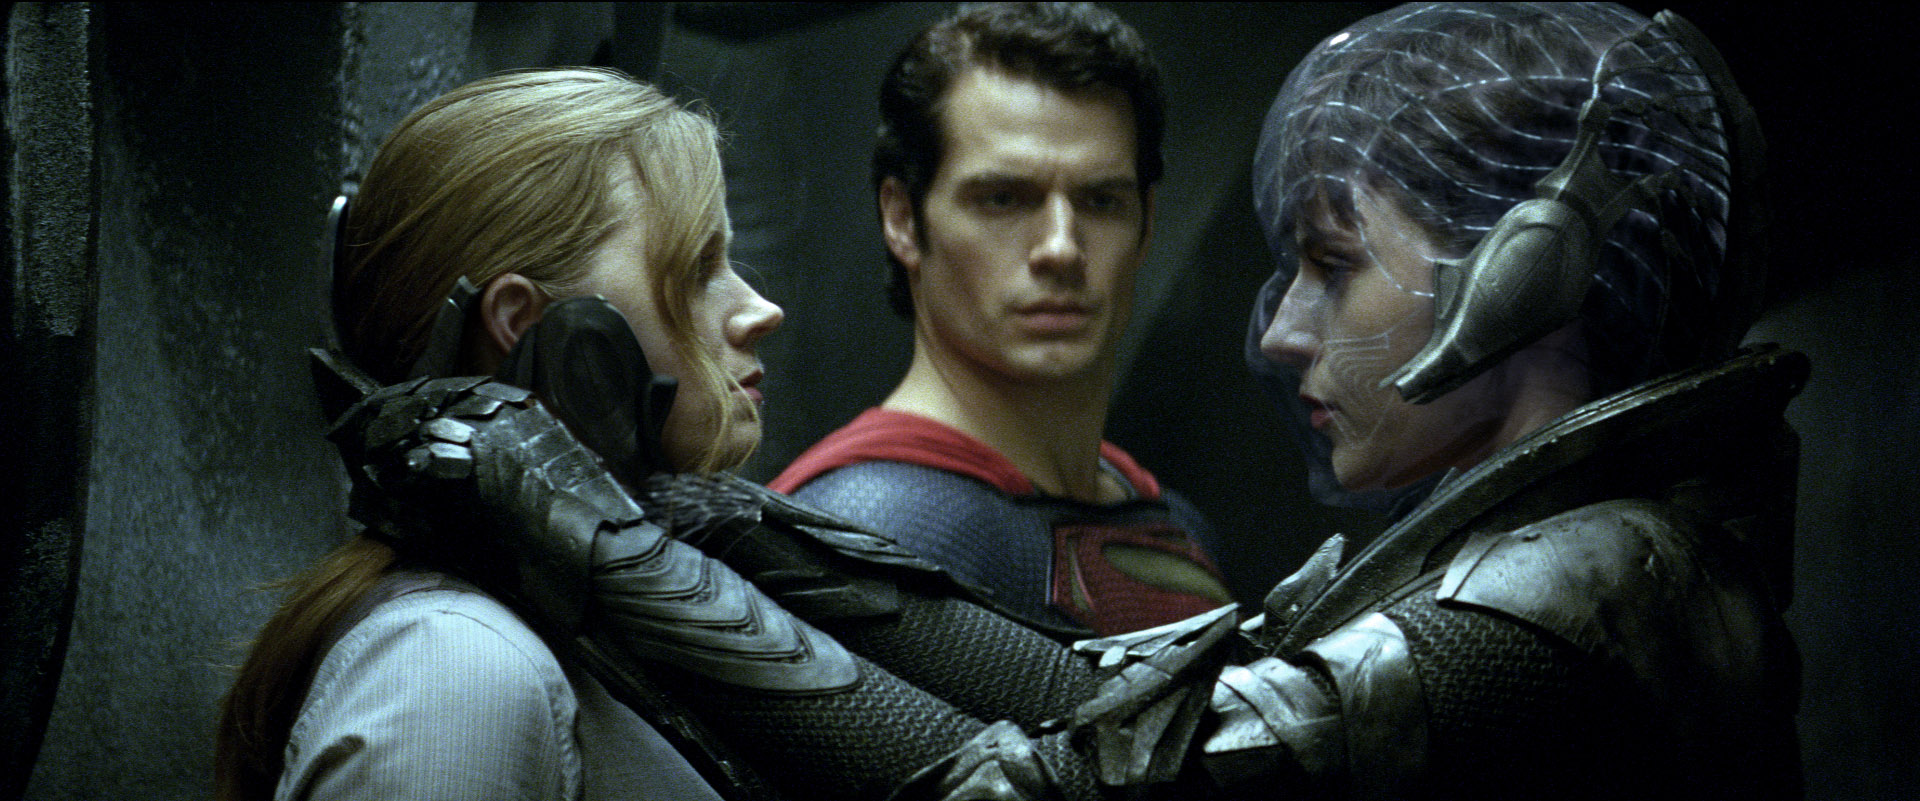 http://images.wikia.com/dcmovies/images/d/dc/Lois,_Superman_and_Faora.jpg